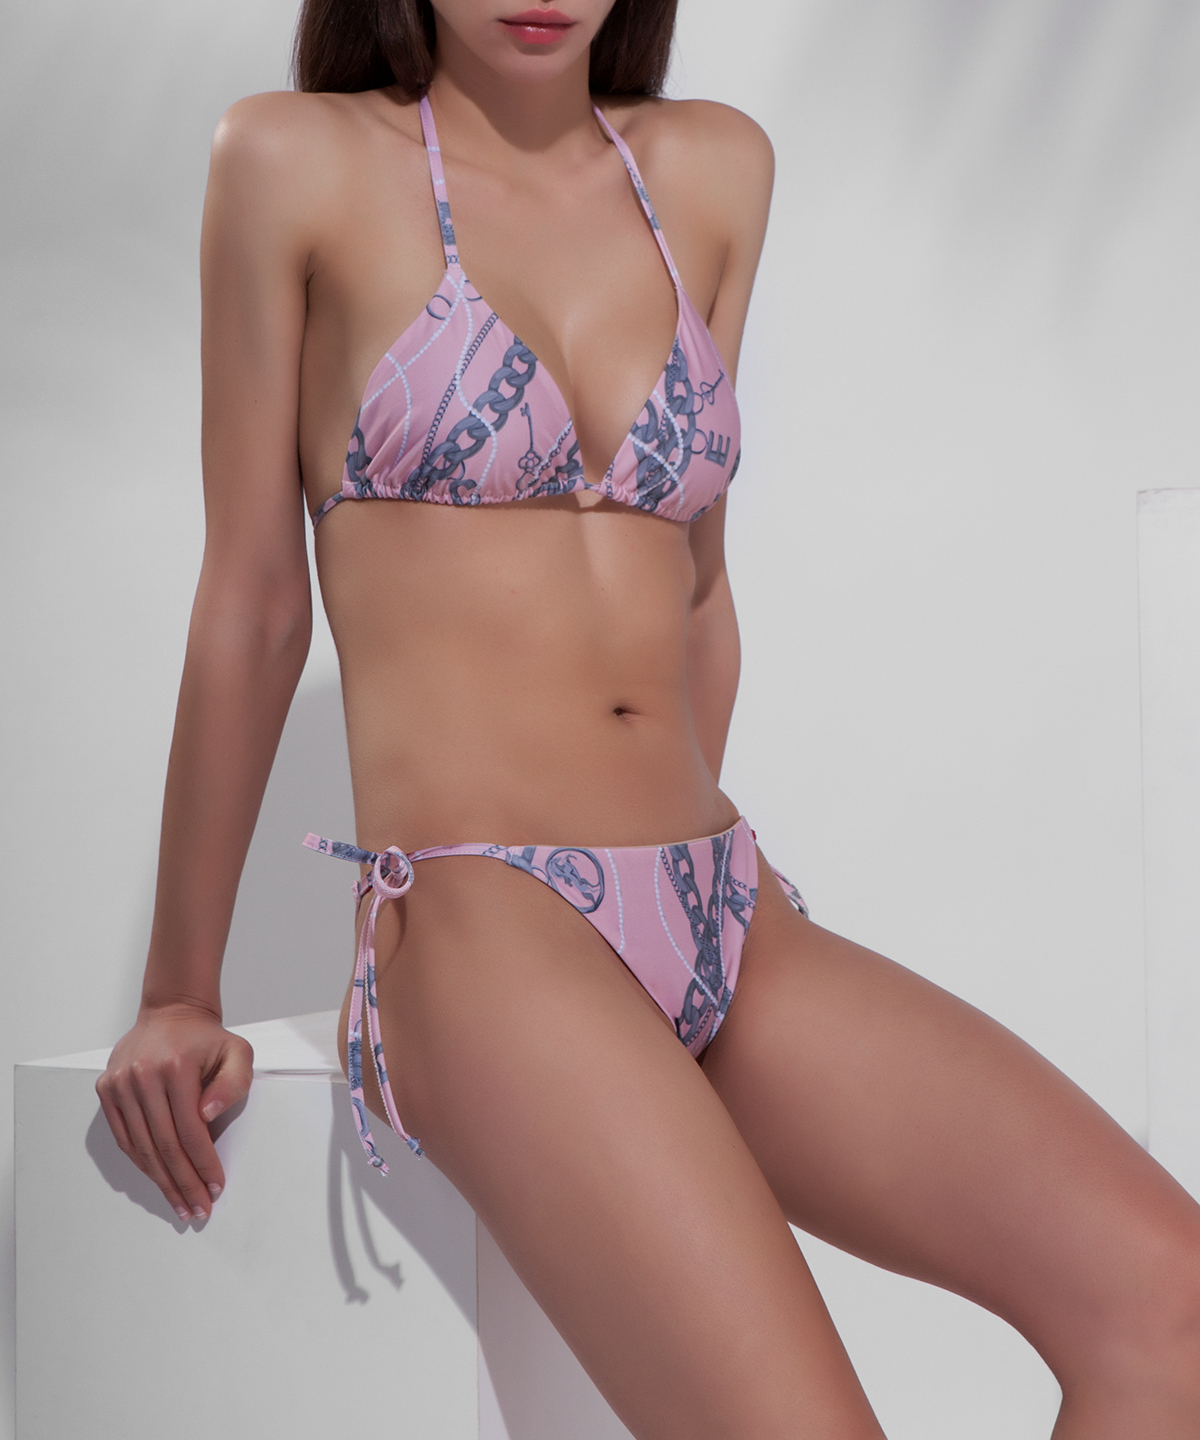 'CottonCandy' swimwear